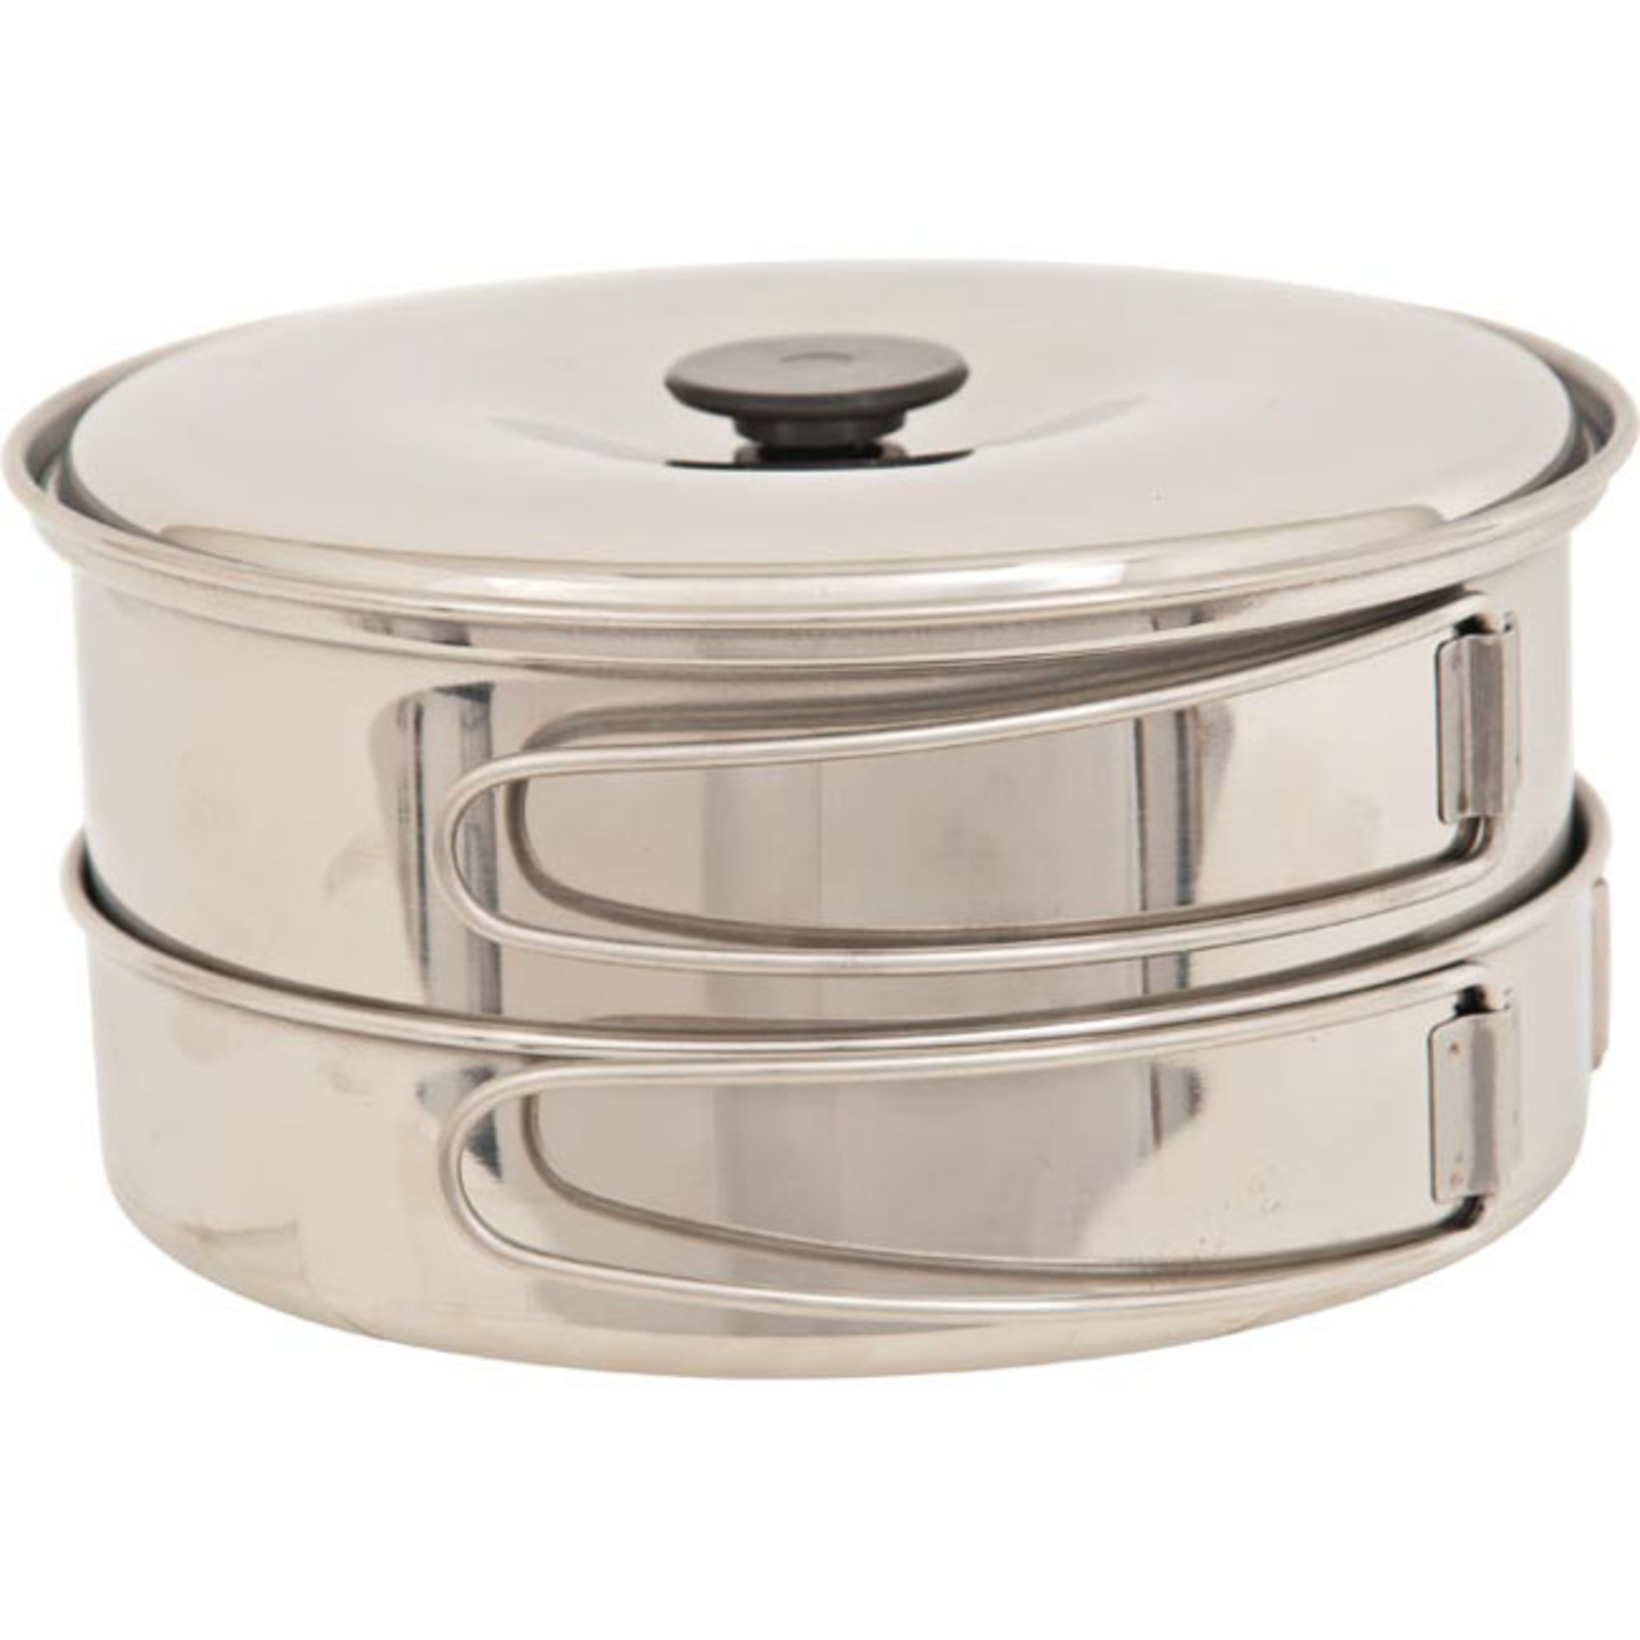 Small, stainless steel pot set